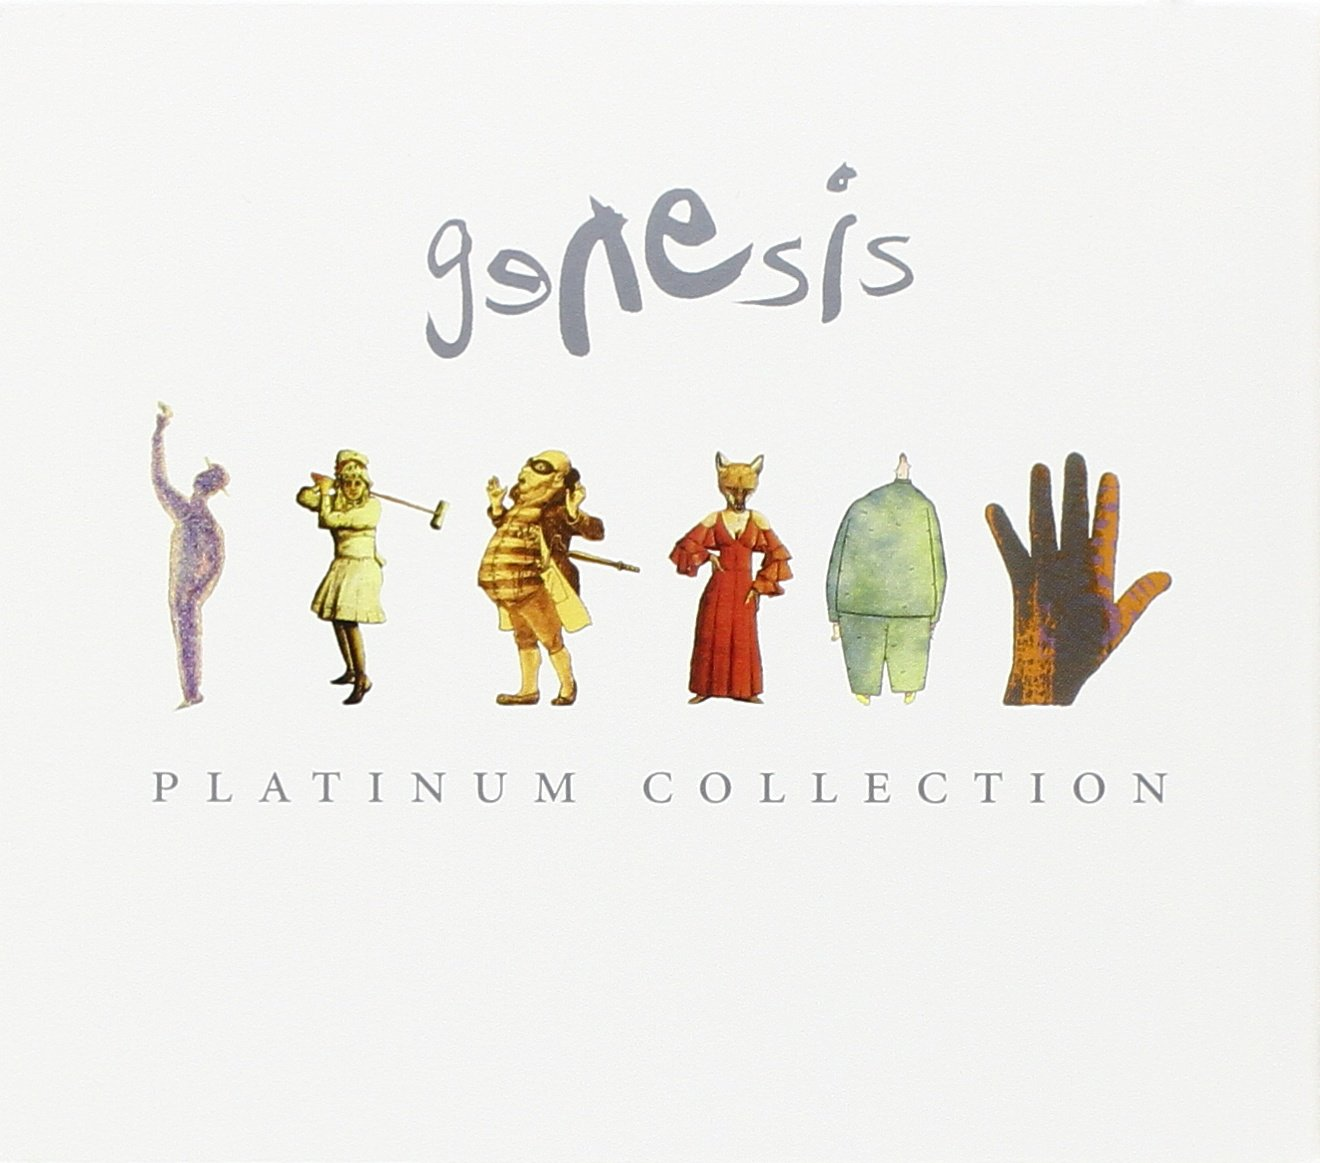 Genesis the Platinum Collection by Rhino